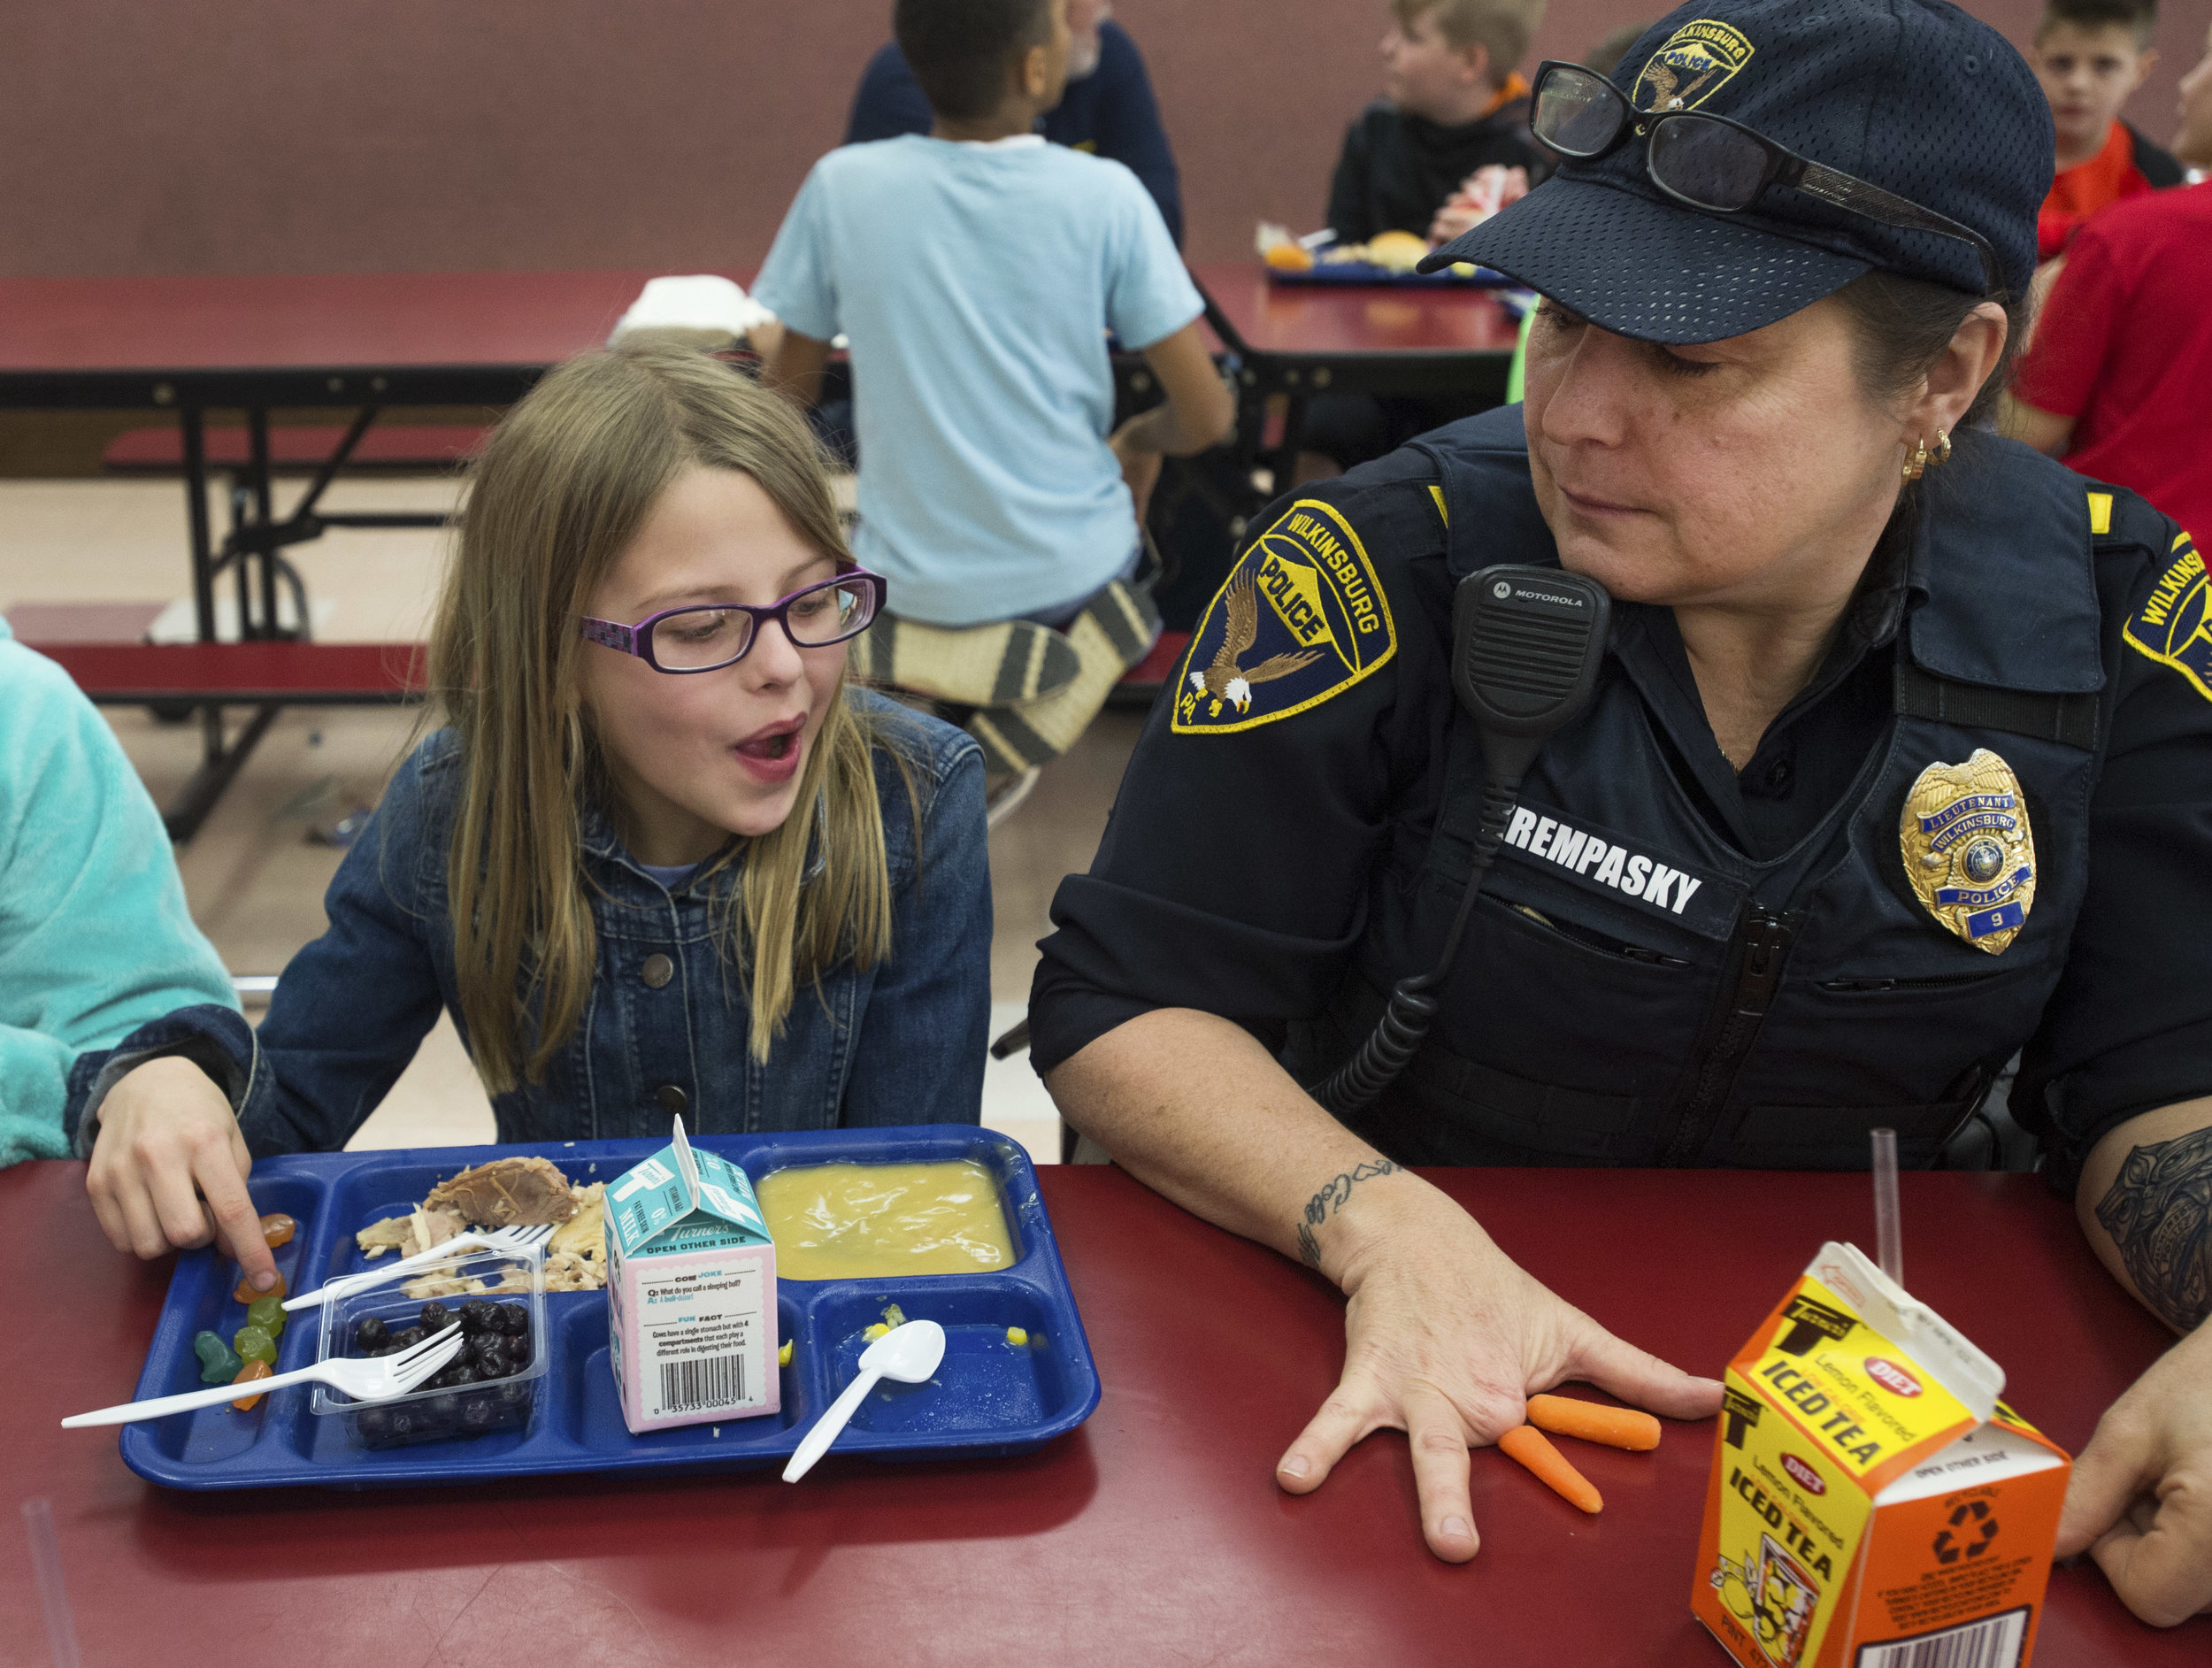 """Wilkinsburg Lt. Michele Krempasky shows 4th-grader Ava her """"carrot fingers"""" during a Hero Luncheon at Sloan Elementary School in Murrysville, Pa. on Wednesday Feb. 22, 2017. Krempasky lost her fingers in a saw accident. Despite the injury and possible retirement, she learned to shoot her gun with her left hand. (Steph Chambers 